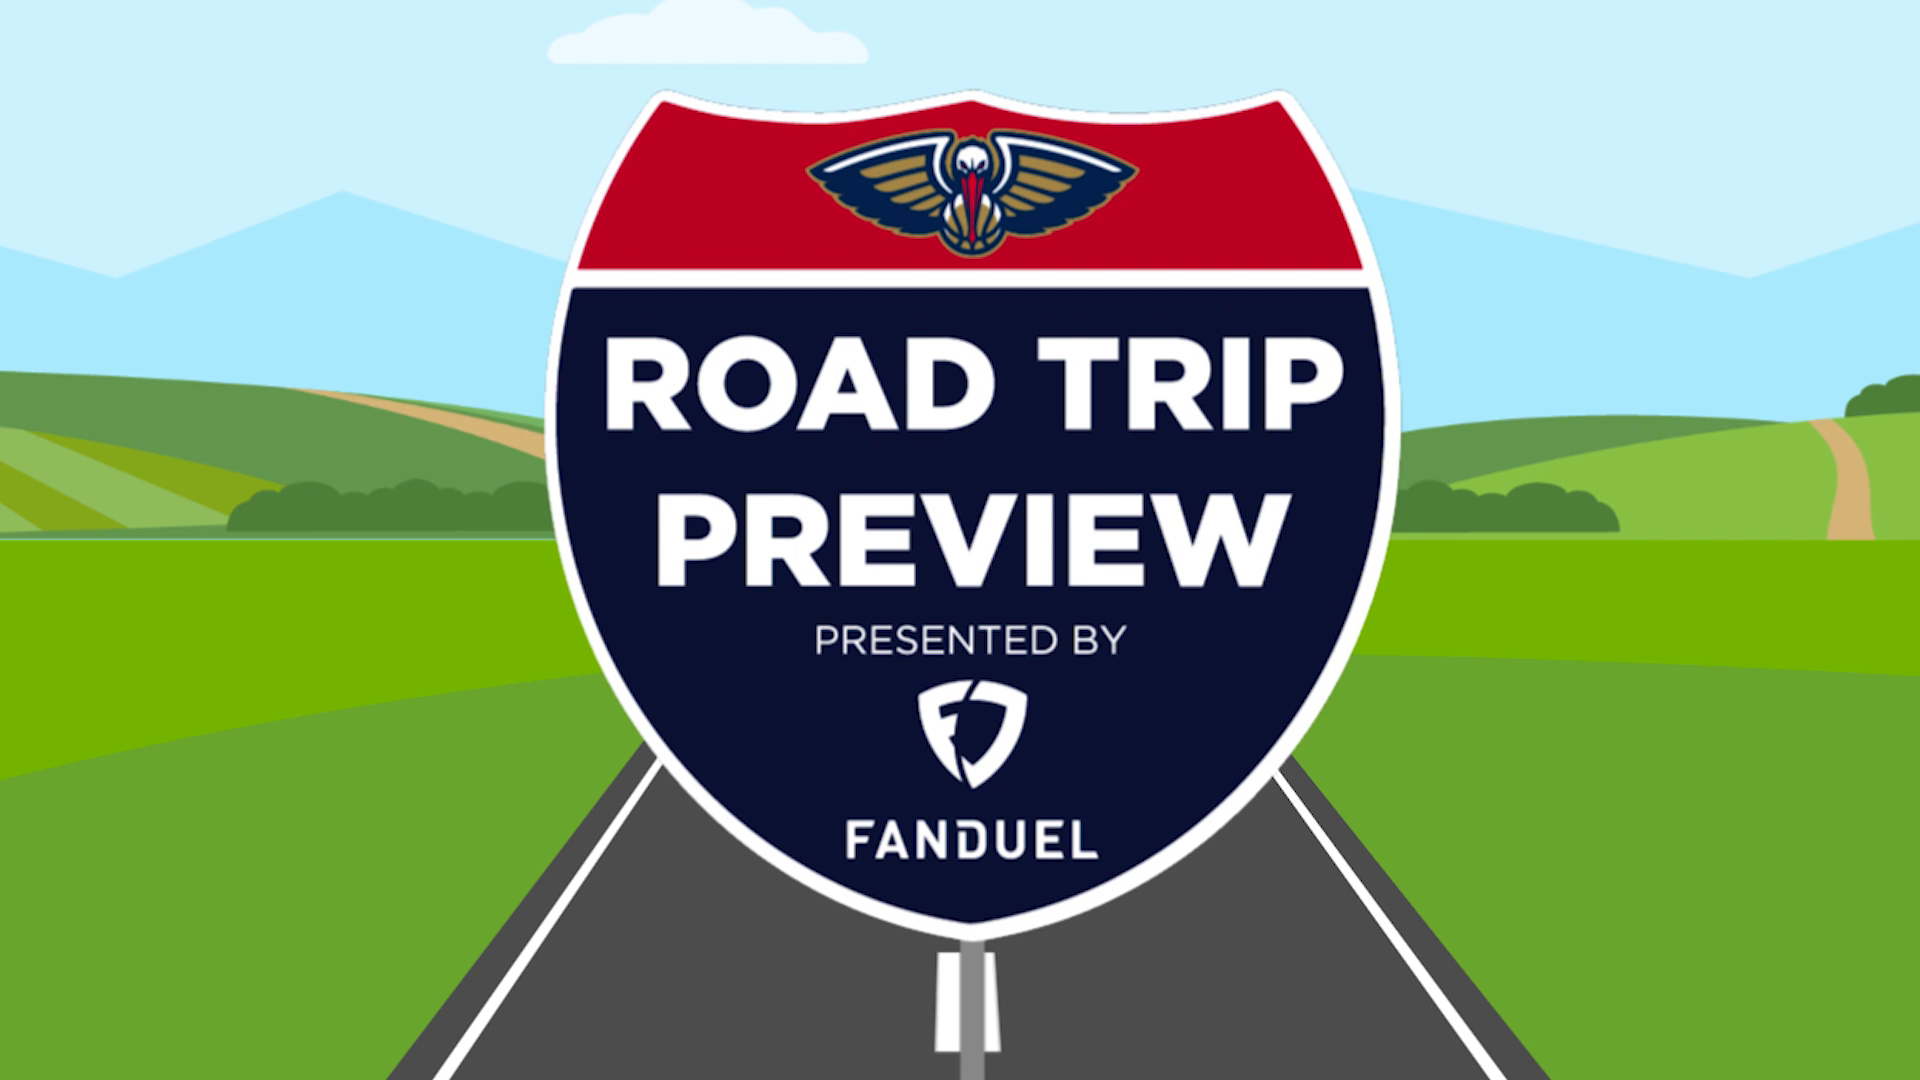 Pelicans Road Trip Preview presented by Fan Duel | Cleveland